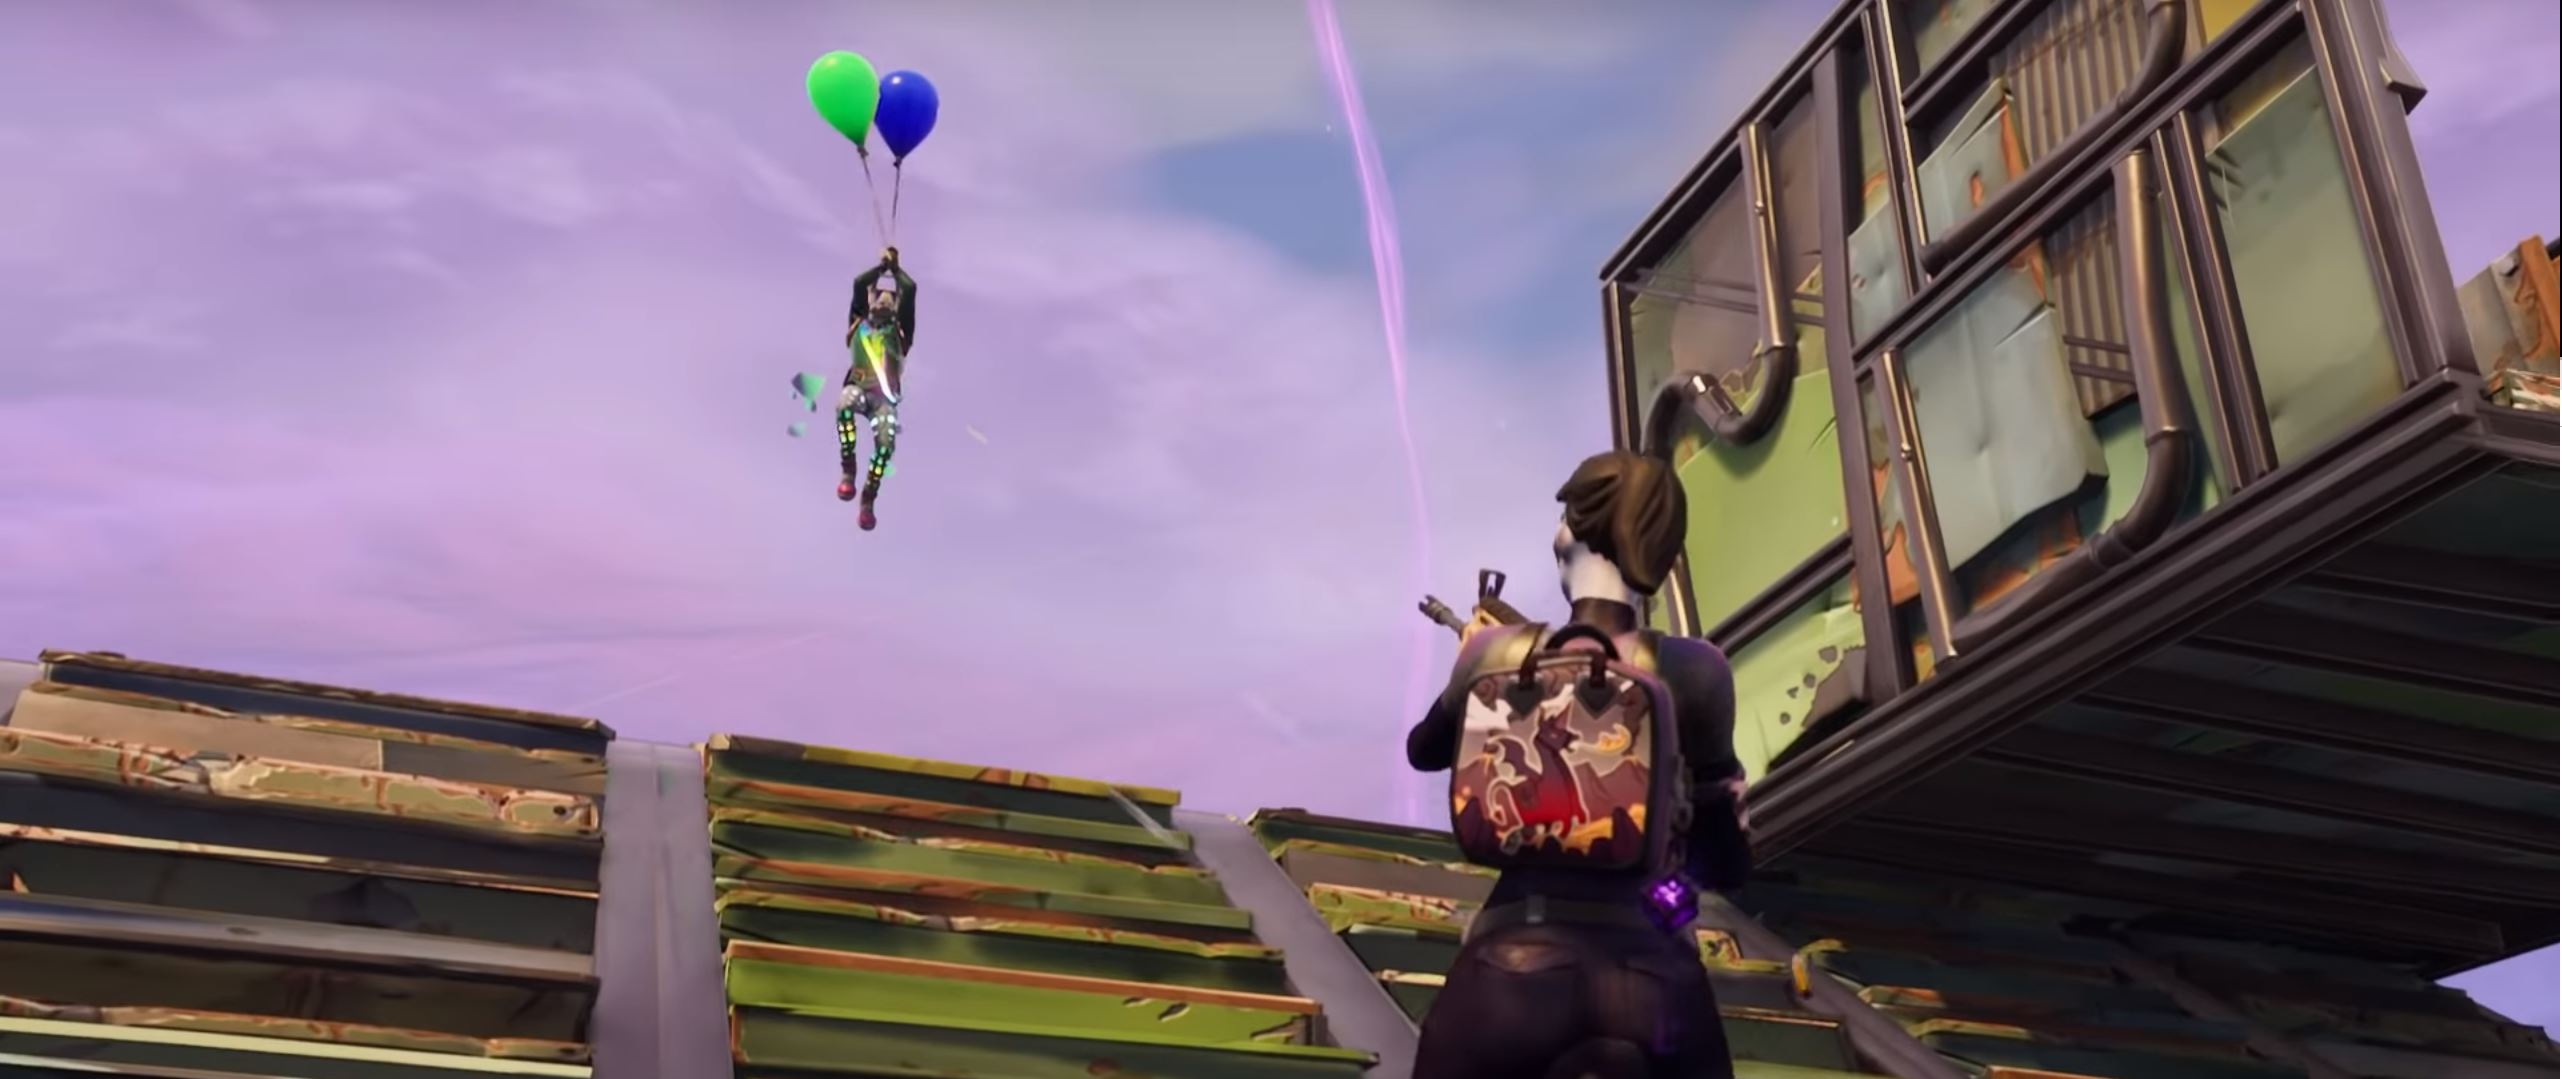 Fortnite-ballon-Action